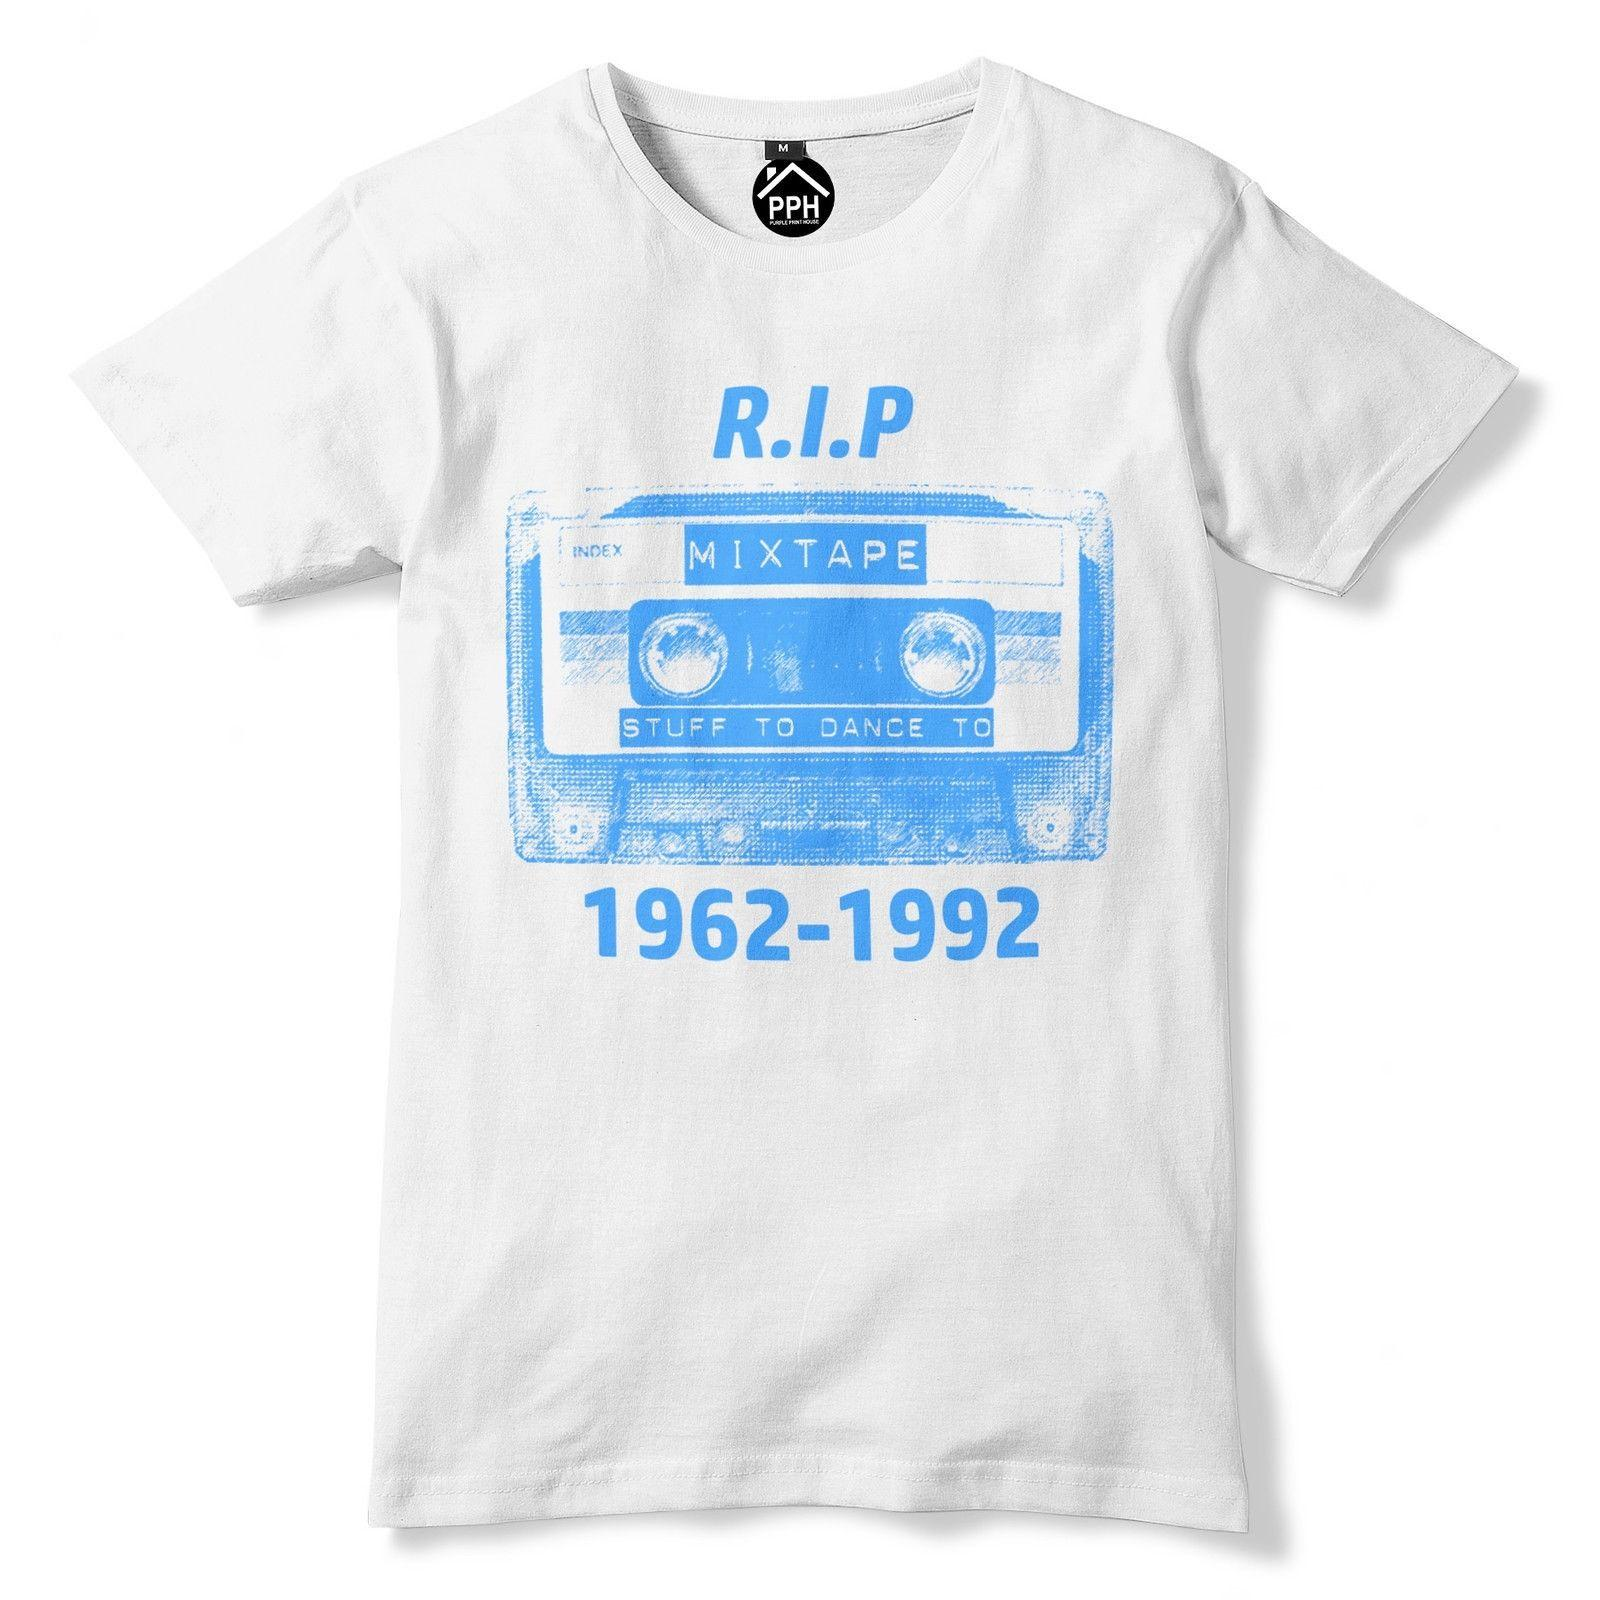 RIP Cassette Tape T Shirt Old School 80s 90s Music Tshirt Top Disco Dance  Personality 2018 Brand High Quality Top Tee Print Summer Style